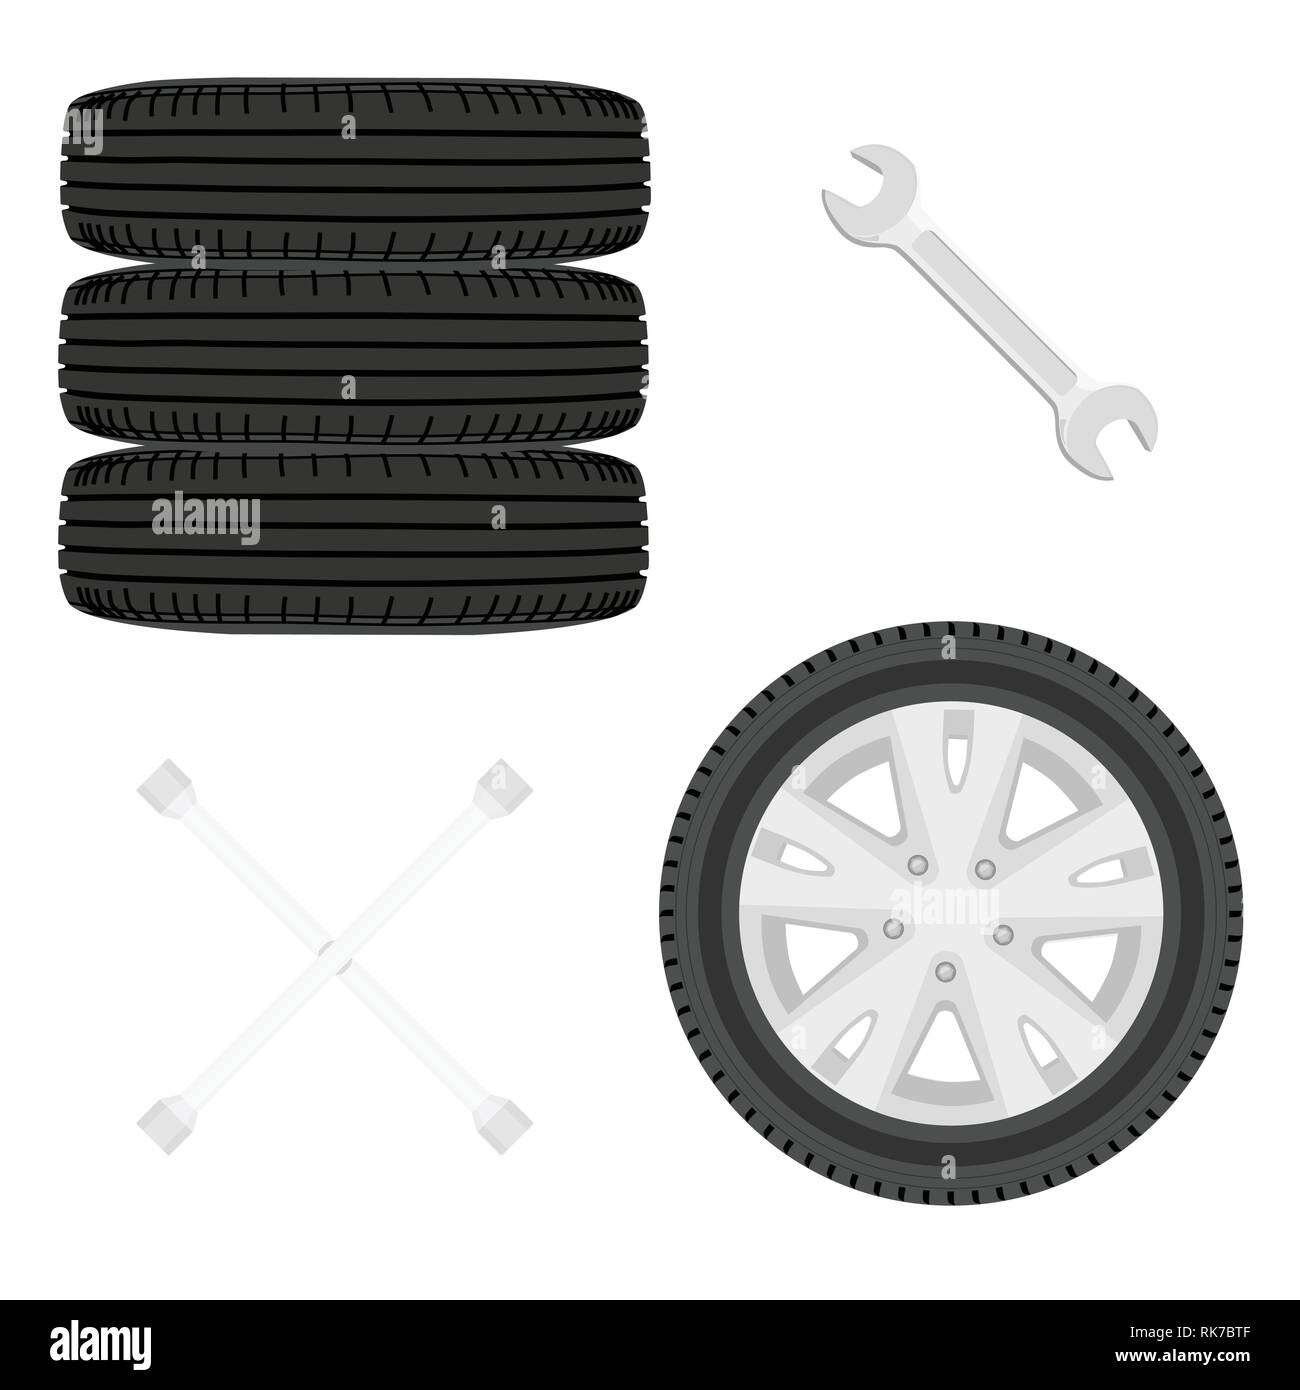 A stack of car tires. Car wheels and wrench icon set isolated on white. Car repair service concept - Stock Vector